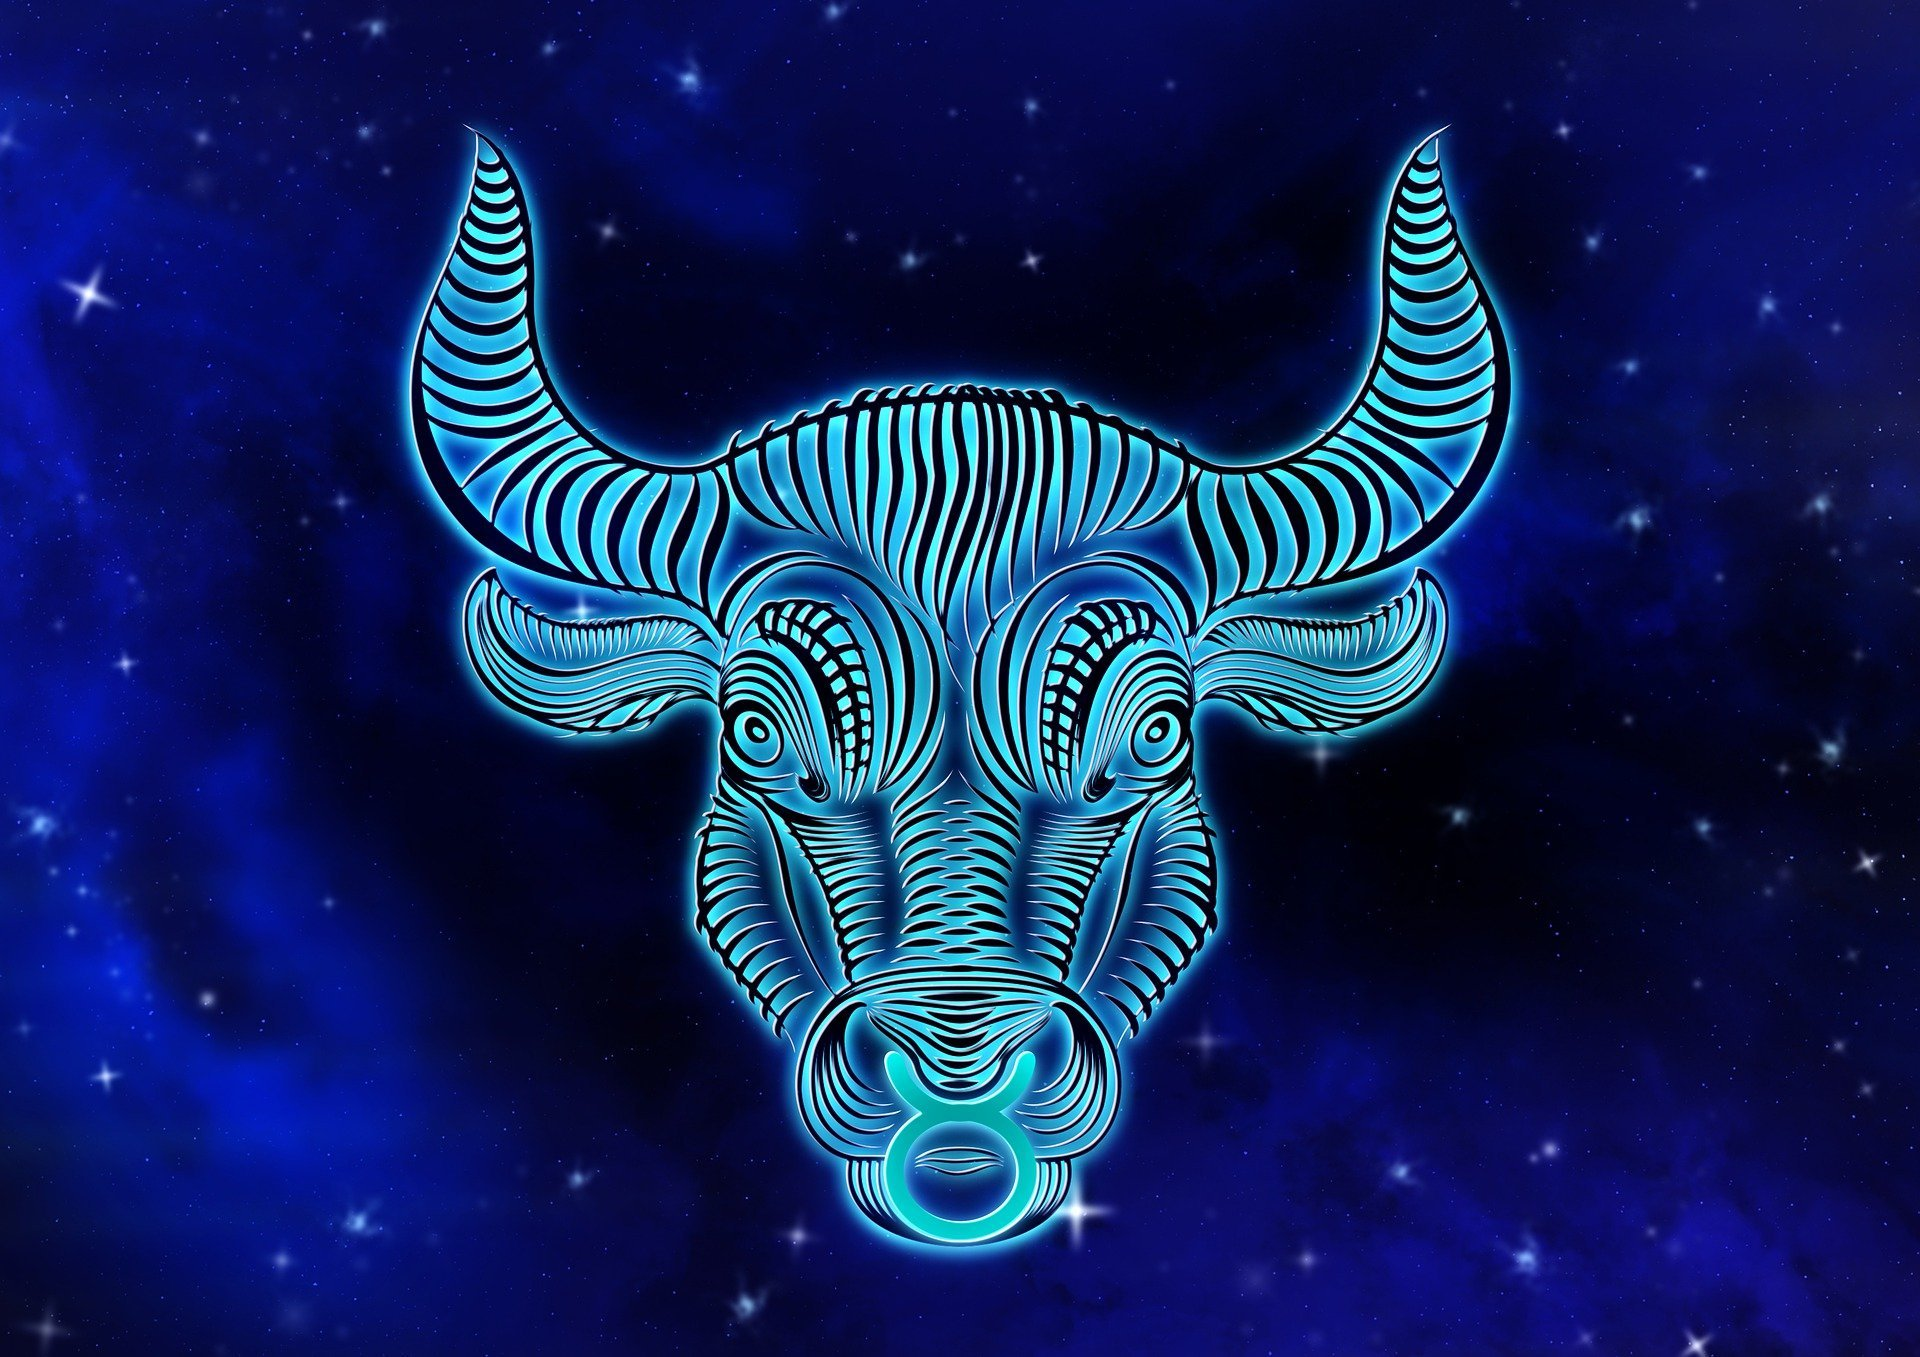 Pictured - A depiction of a Taurus star sign   Source: Pixabay